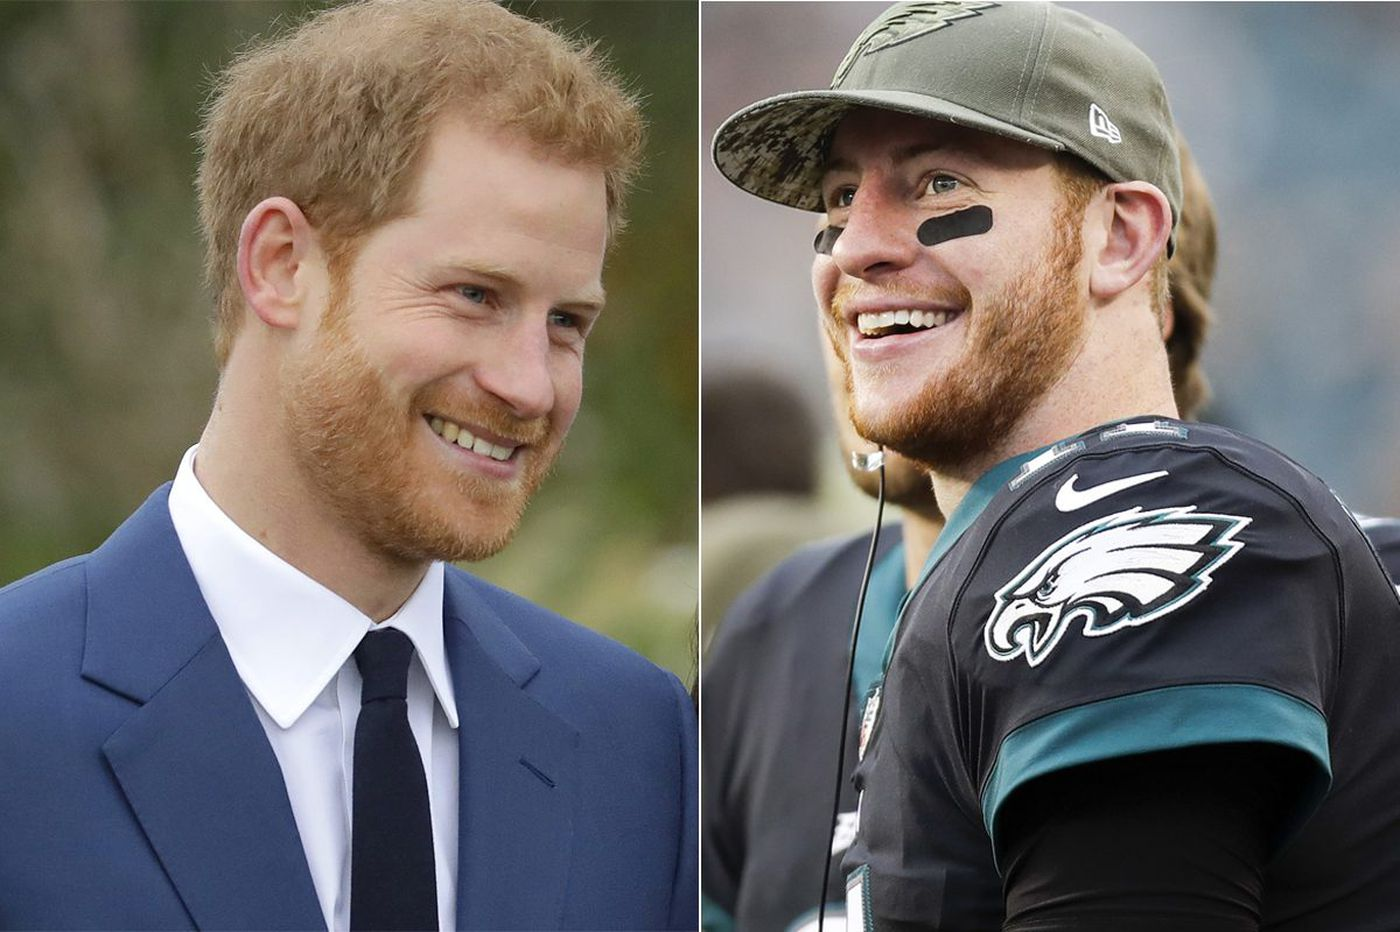 The Internet wonders: Are Carson Wentz and Prince Harry the same person?